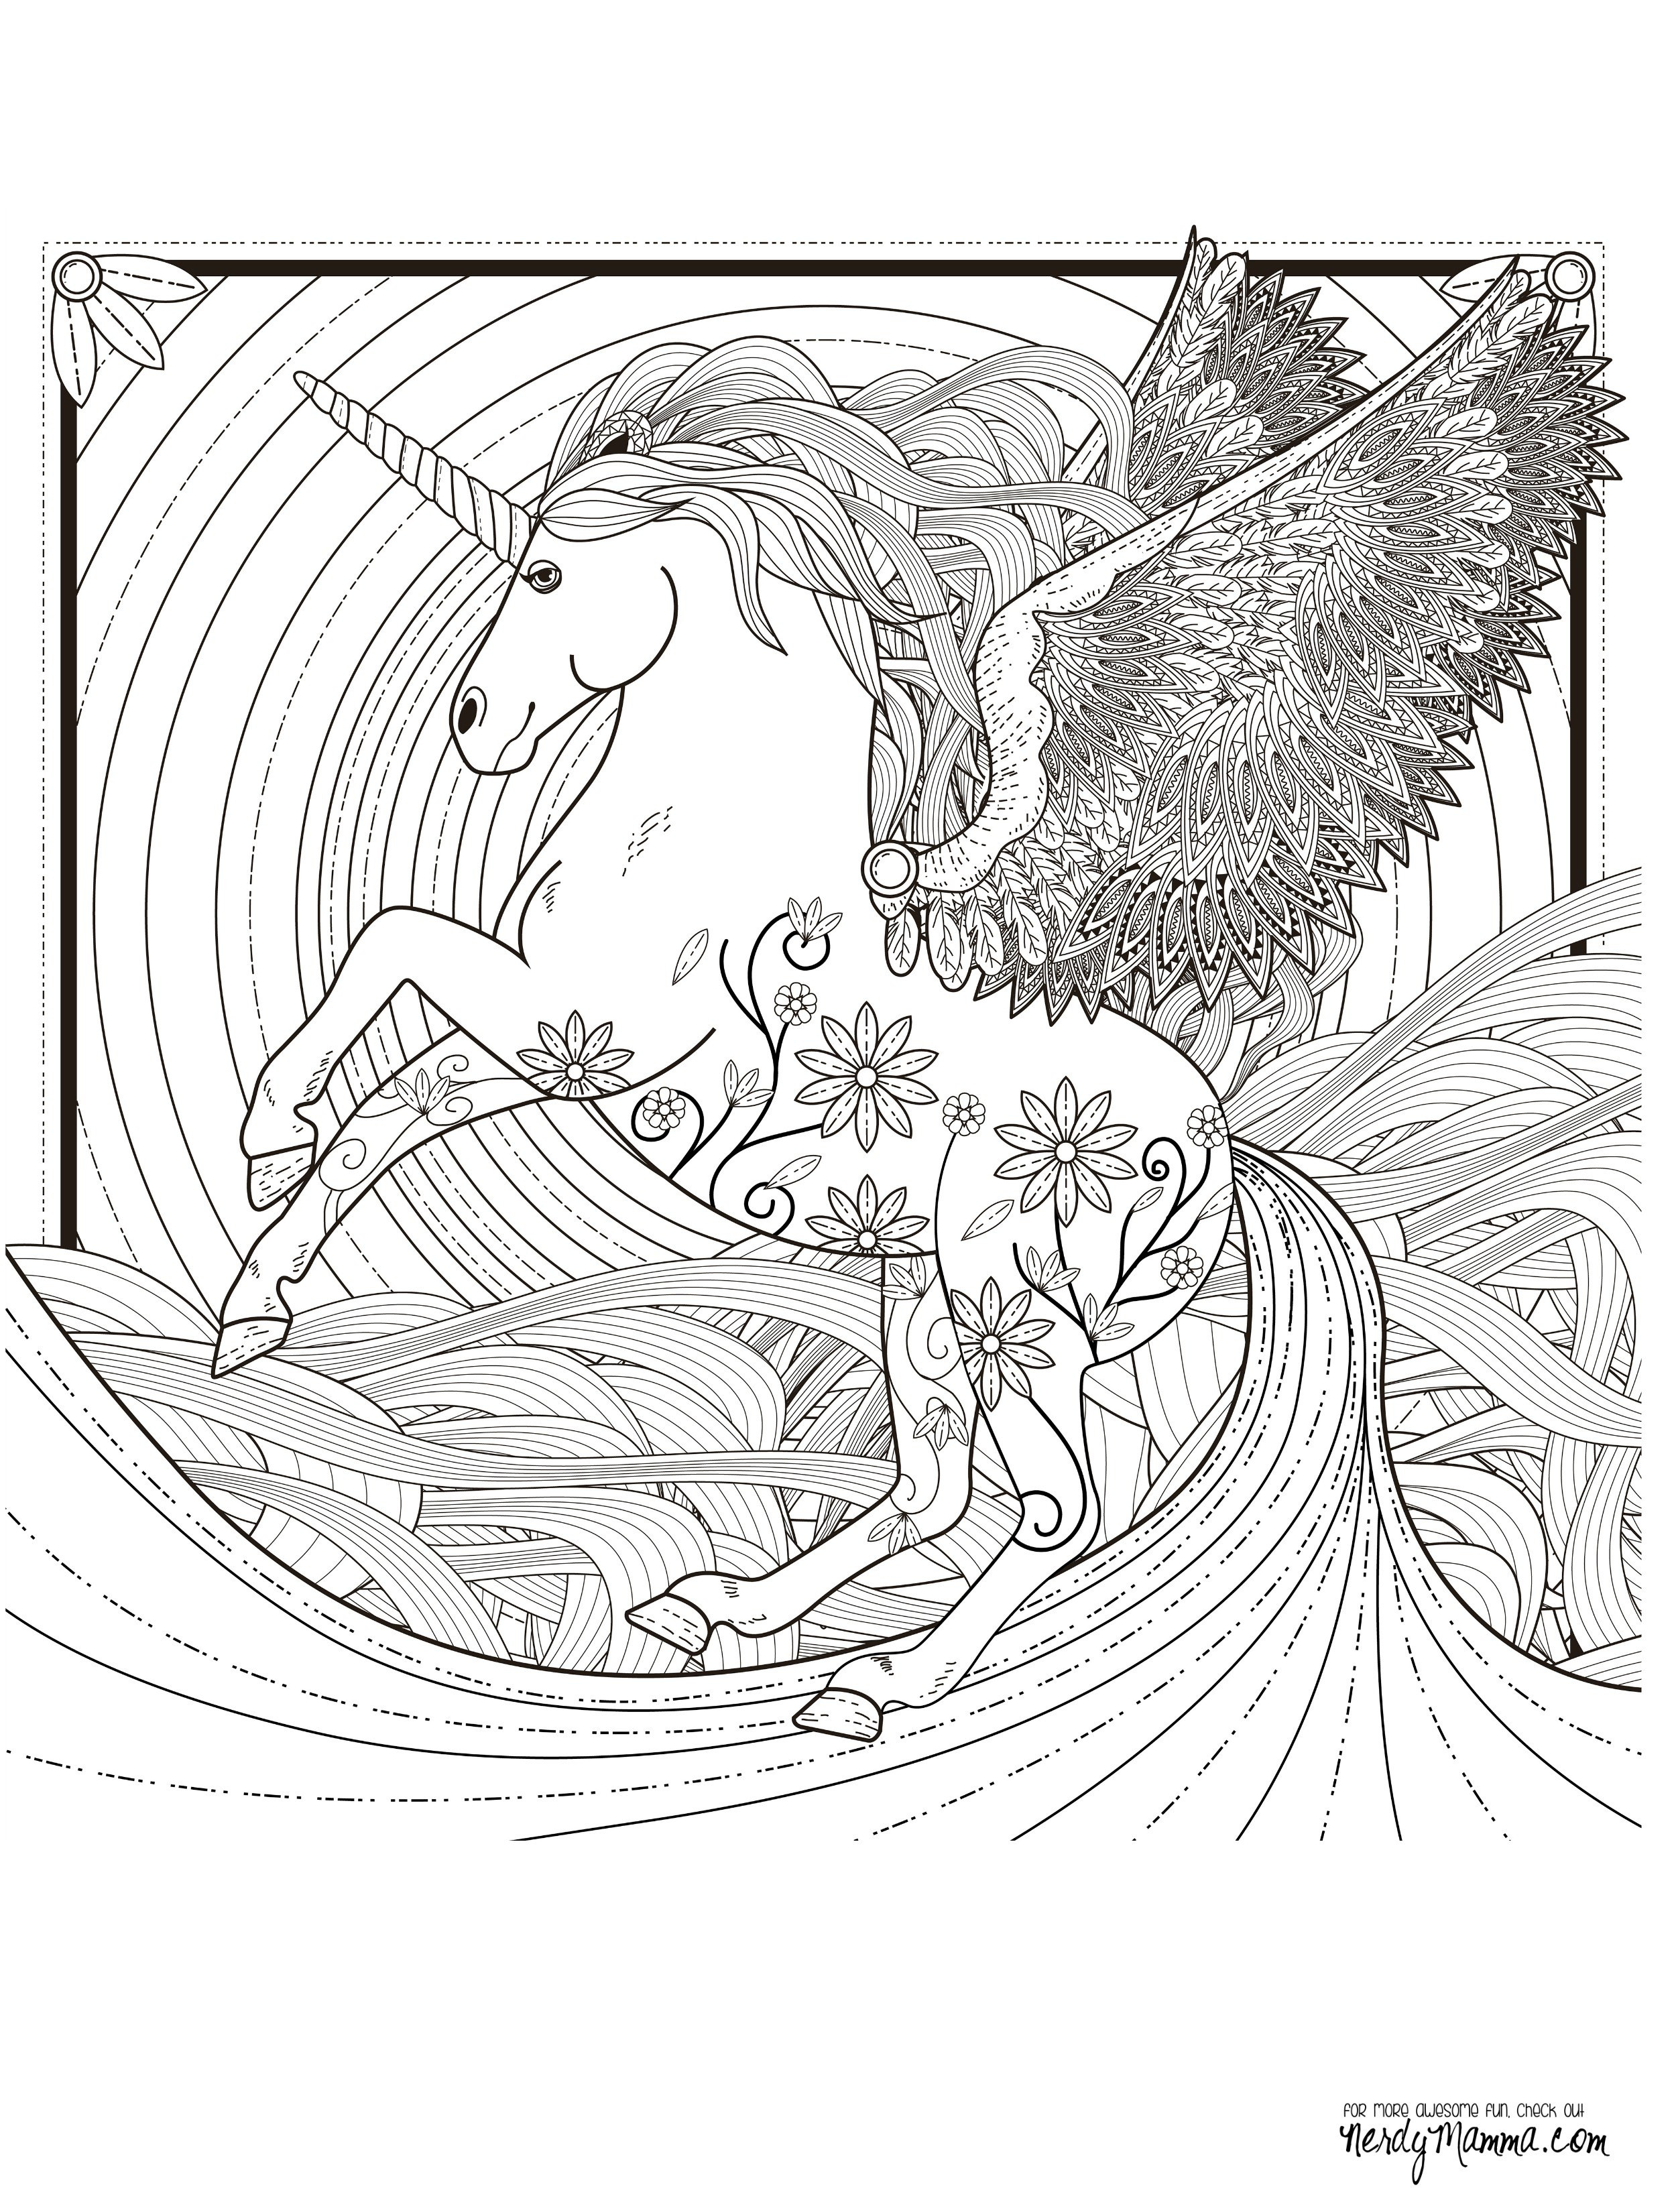 Adult Coloring Pages Unicorn  11 Free Printable Adult Coloring Pages